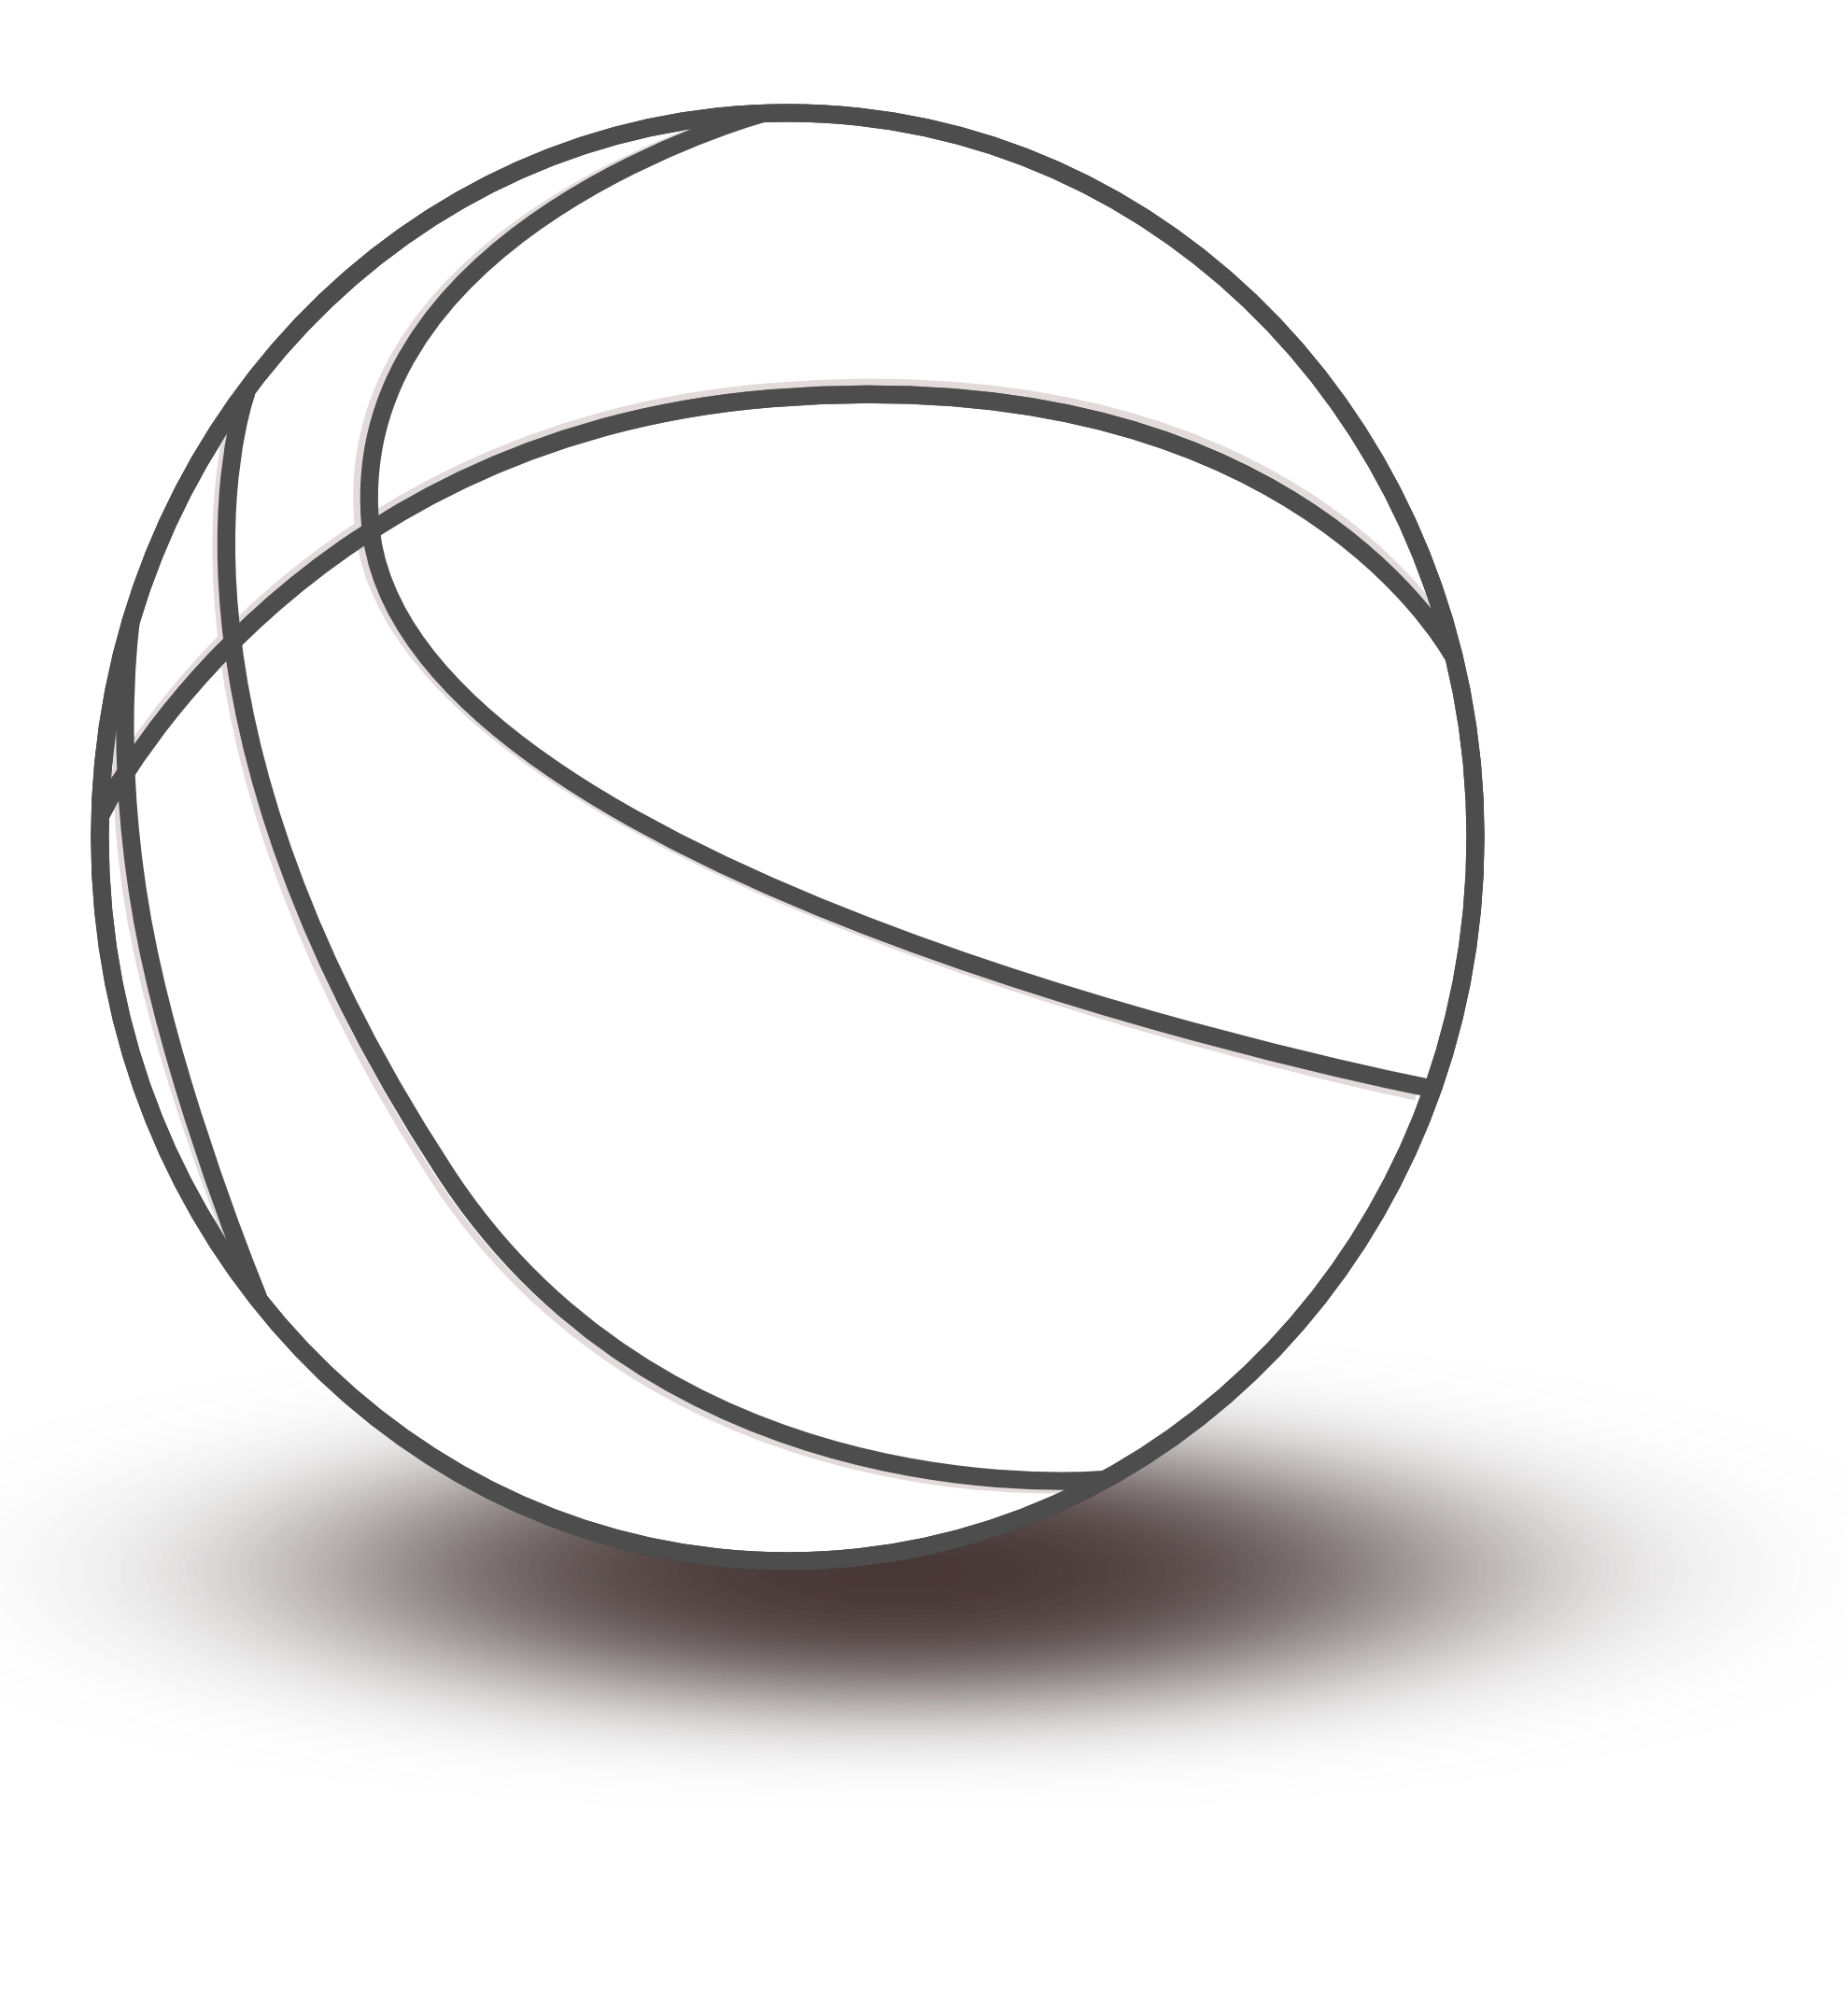 Clipart basketball black and white clip art free library Basketball Ball Clipart Black And White | Clipart Panda - Free ... clip art free library